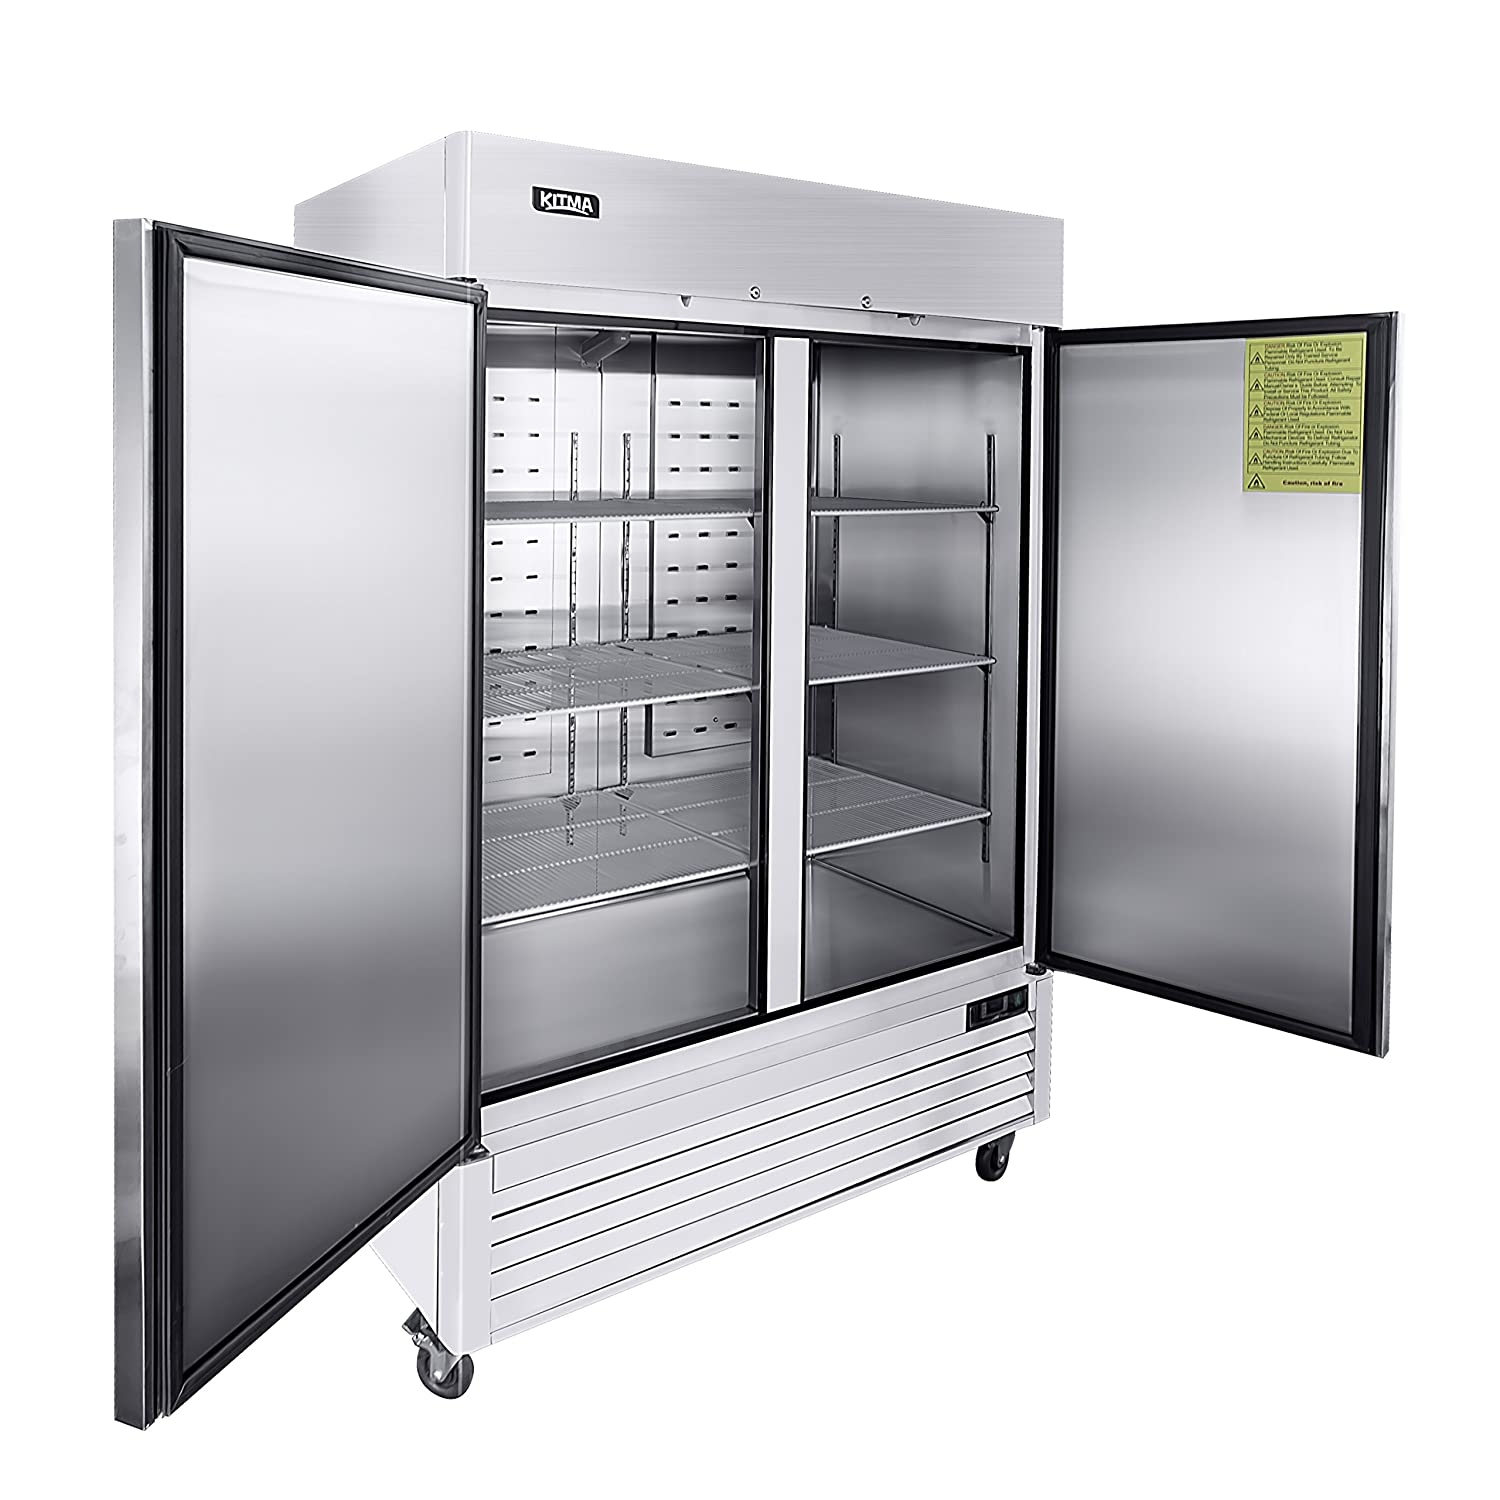 "54"" Two Section Solid Door Reach-in Commercial Refrigerator - KITMA 49 cu. ft Side by Side Stainless Steel Upright Fridge for Restaurant"